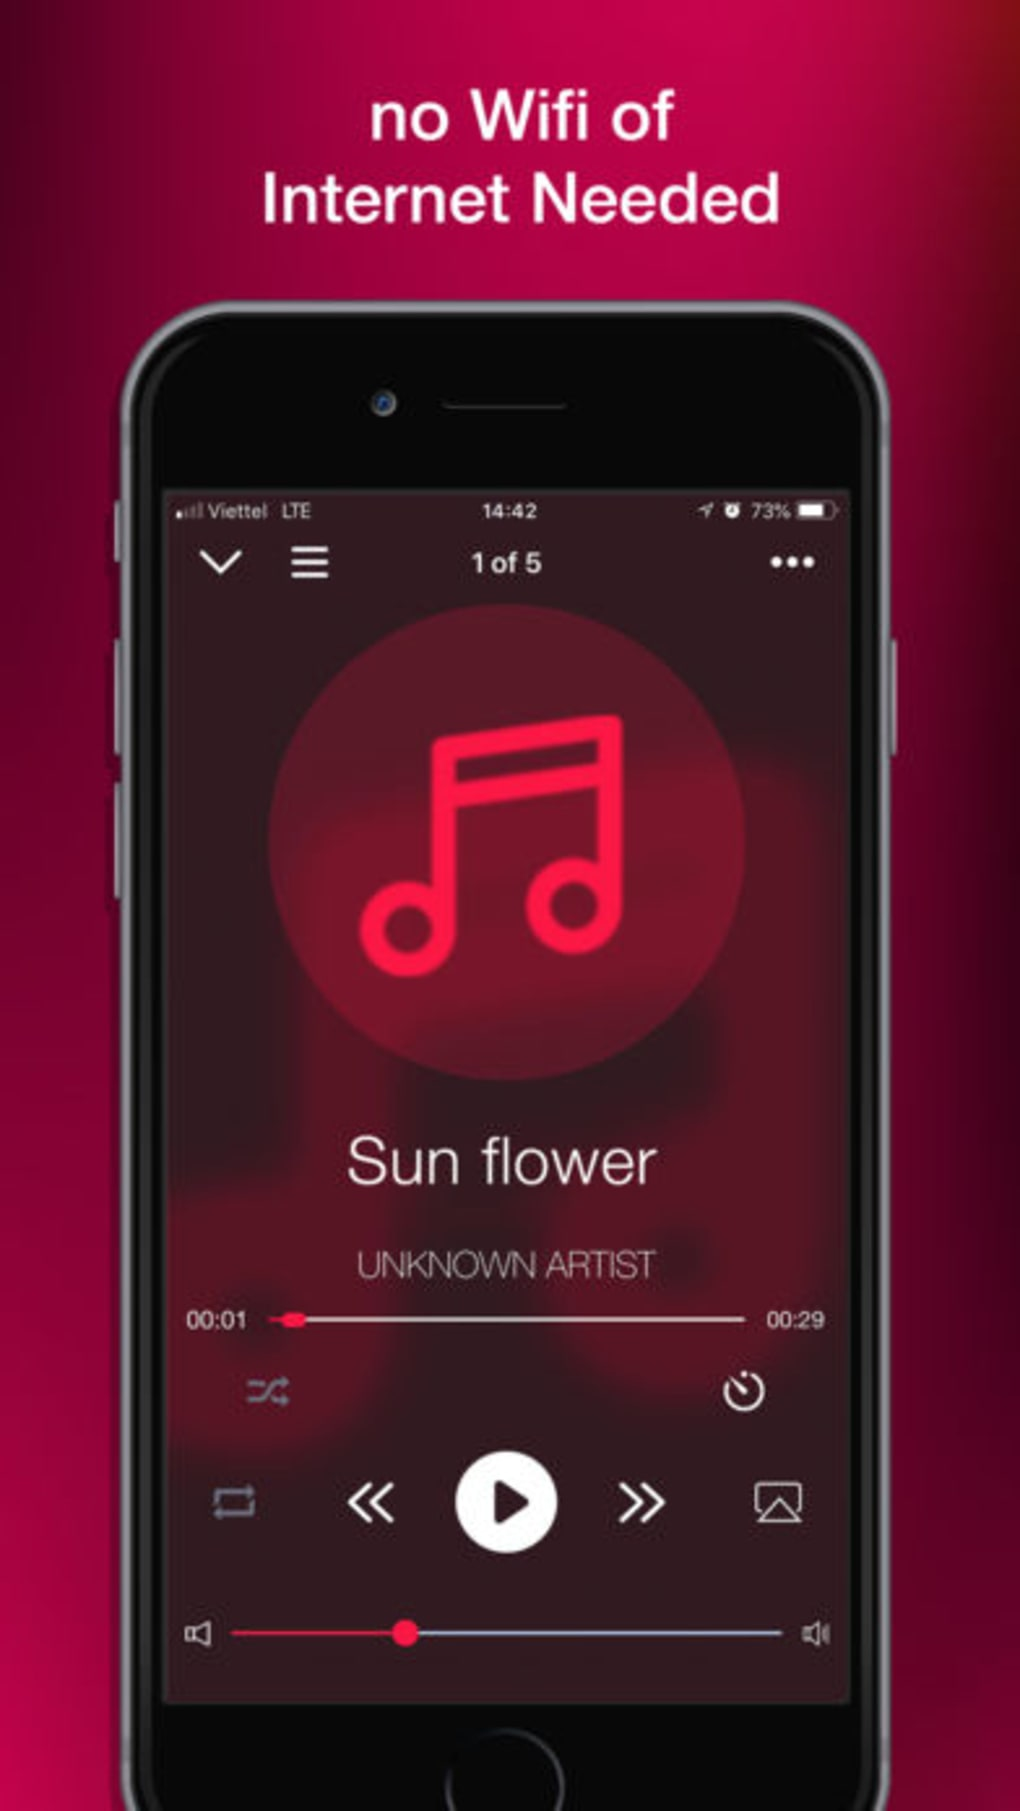 Free music downloader for iphone without wifi